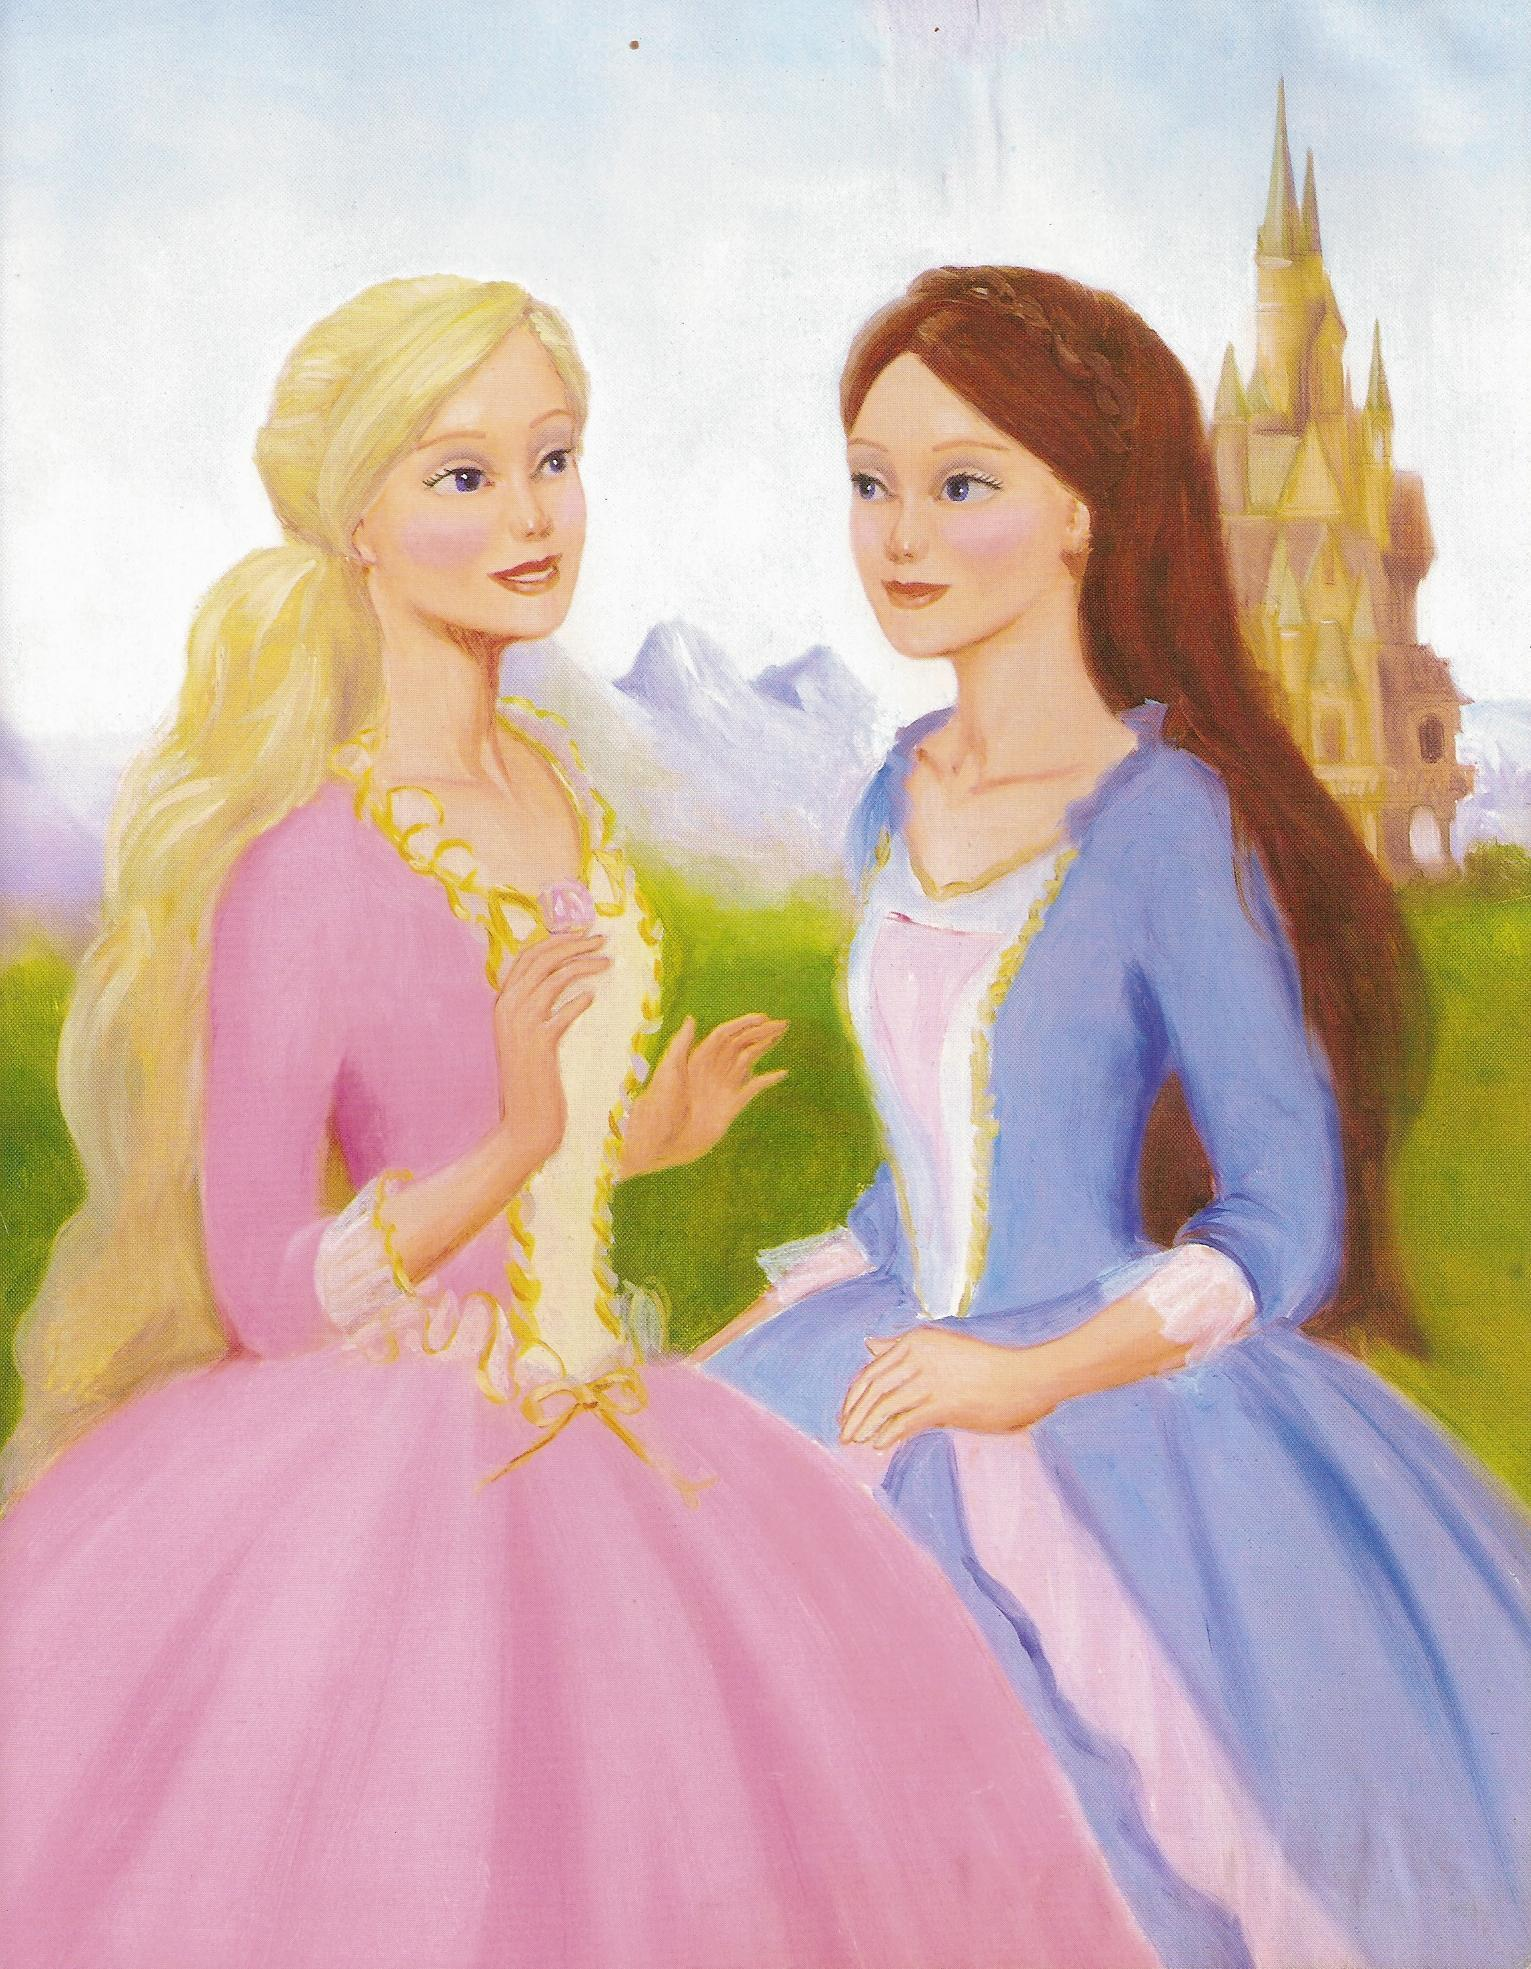 Princess Anneliese Images Anneliese Hd Wallpaper And Princess Anneliese And Erika From